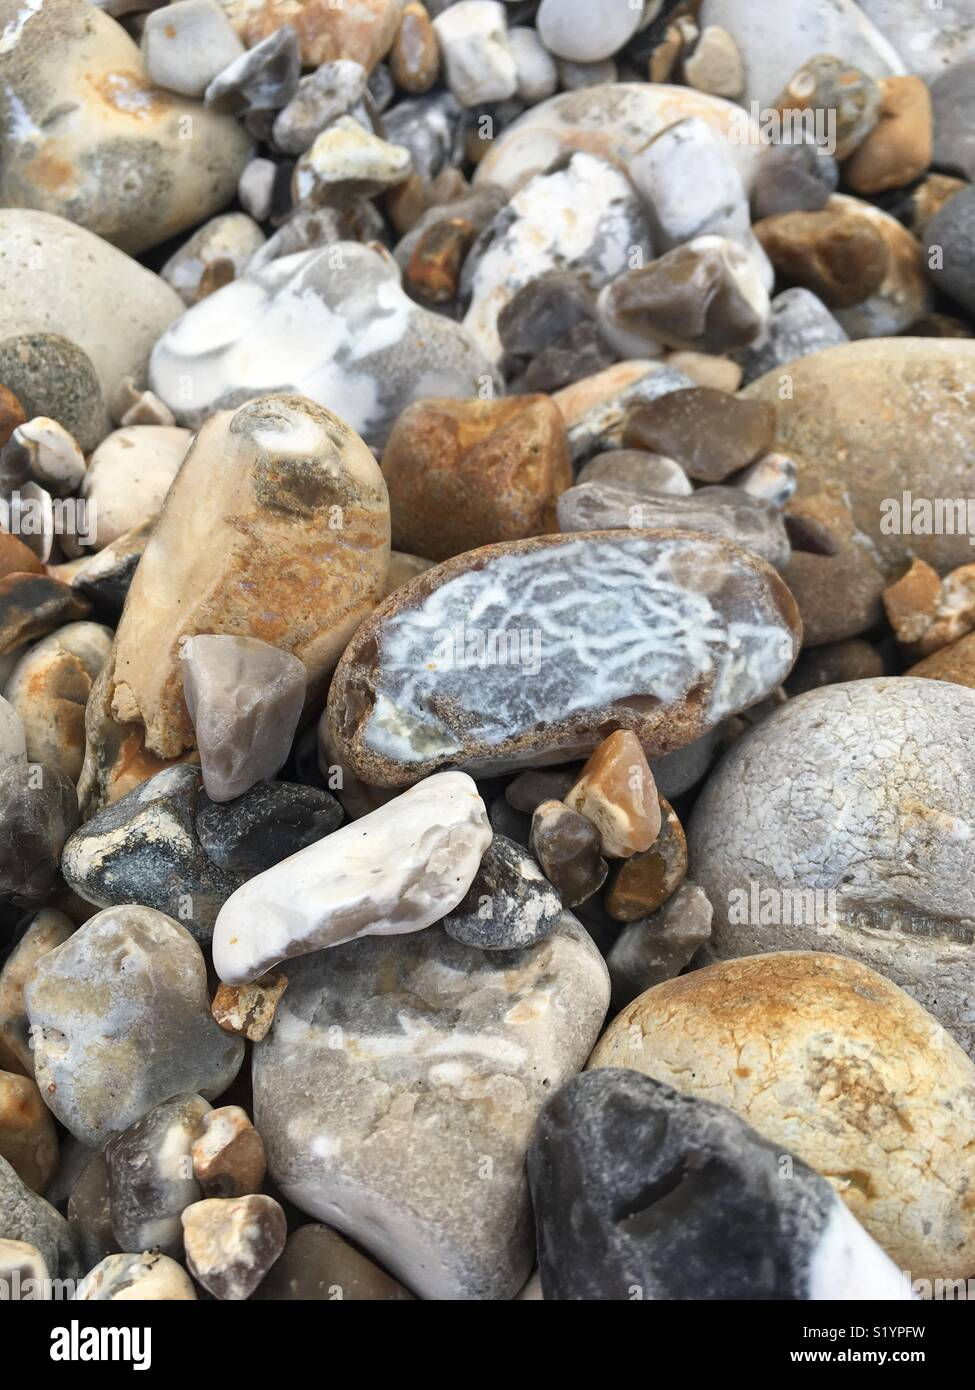 Variety of stones - Stock Image